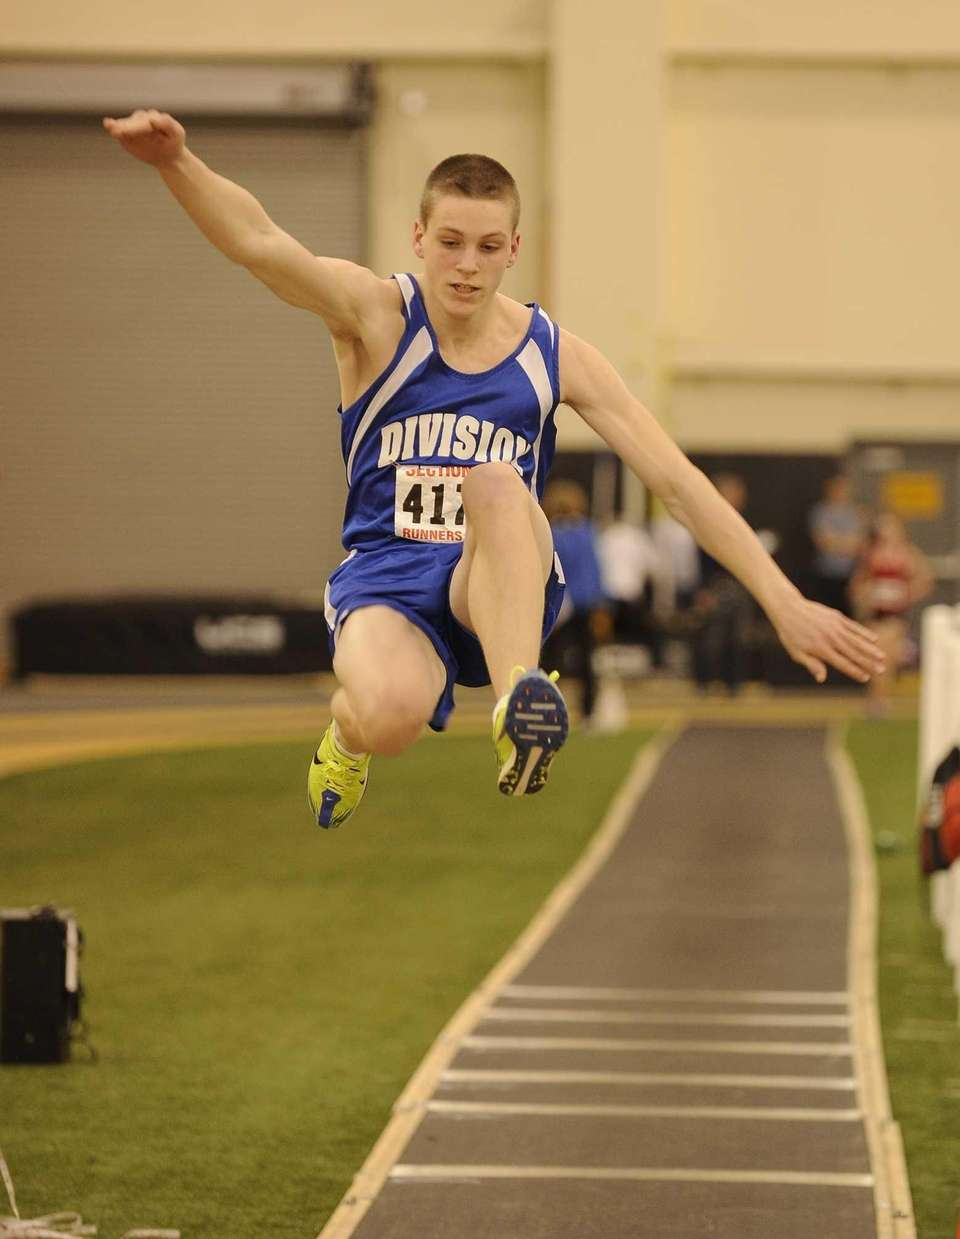 Division's Bjorn Bjornsson competes in the long jump.